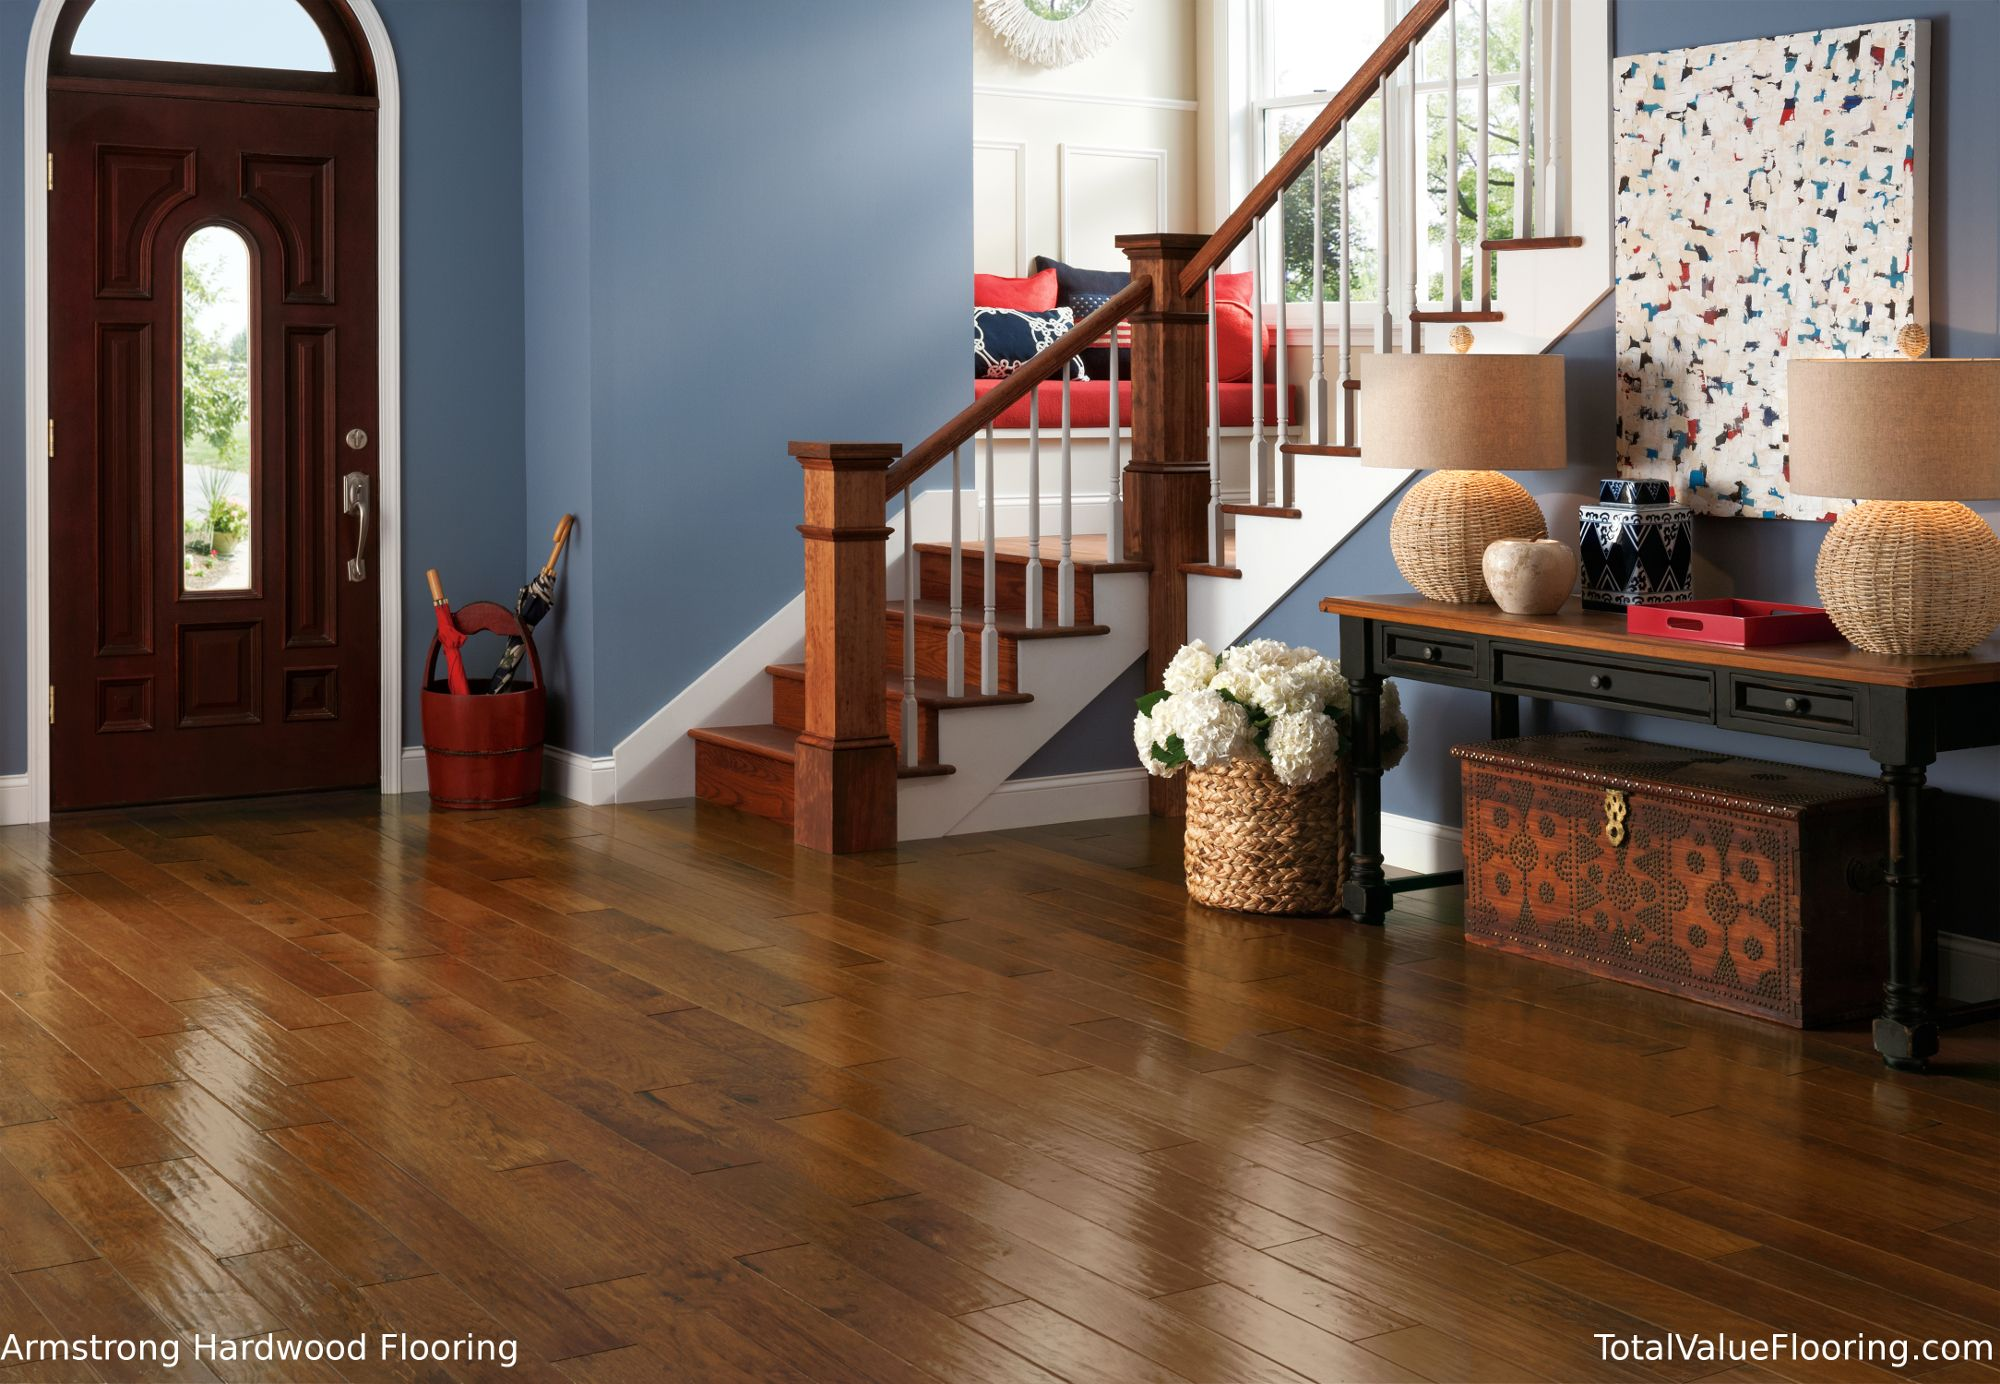 floor living tile vinyl armstrong timber floors plans homes wood residential flooring contract natural